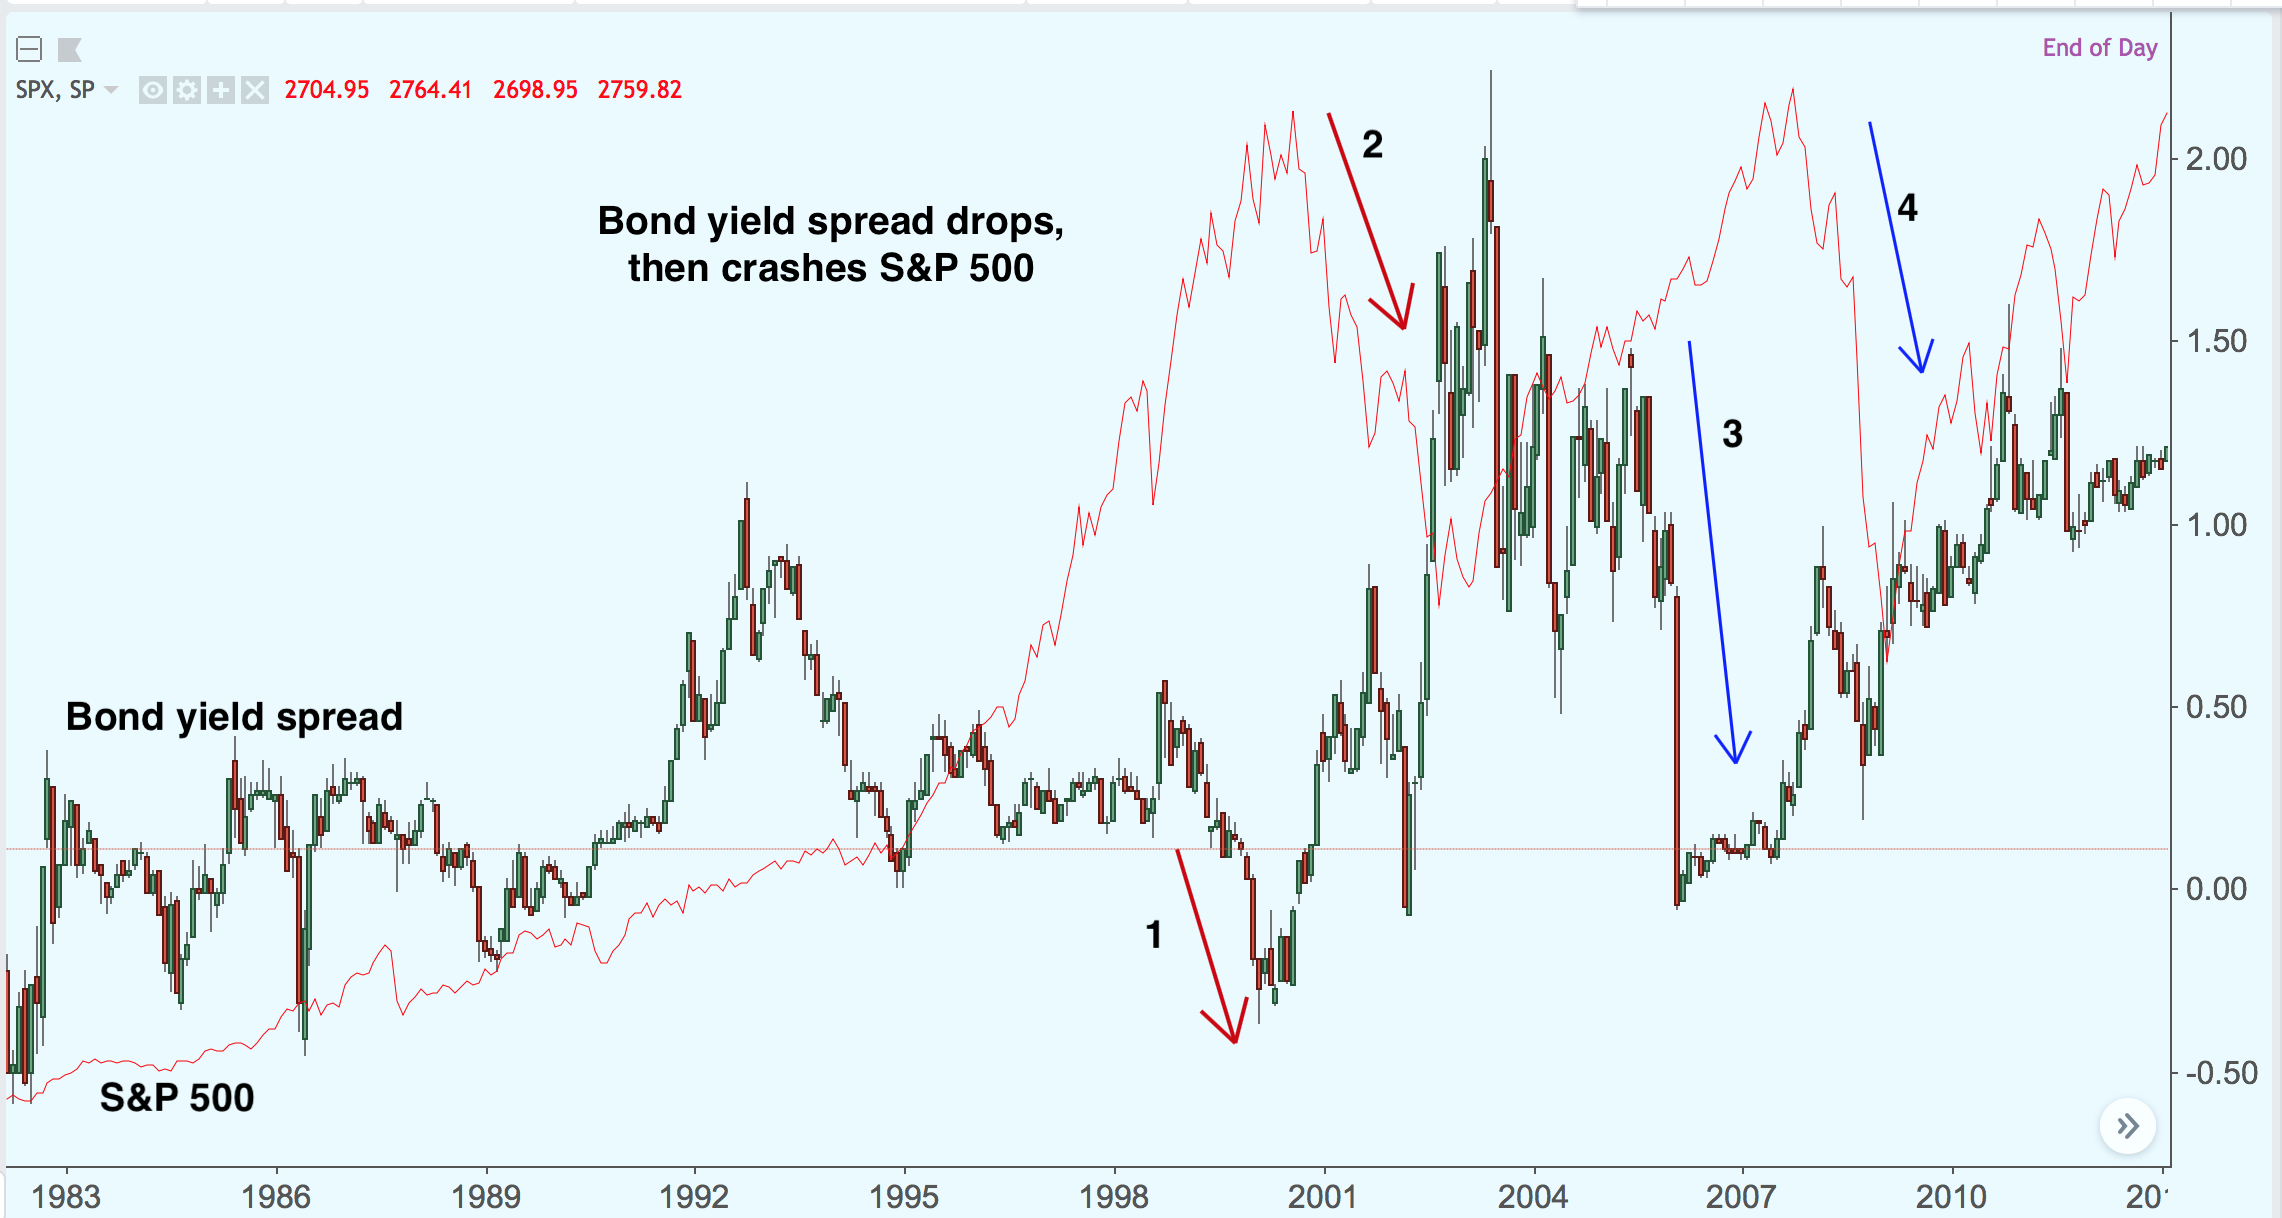 bond yield curve and S&P500